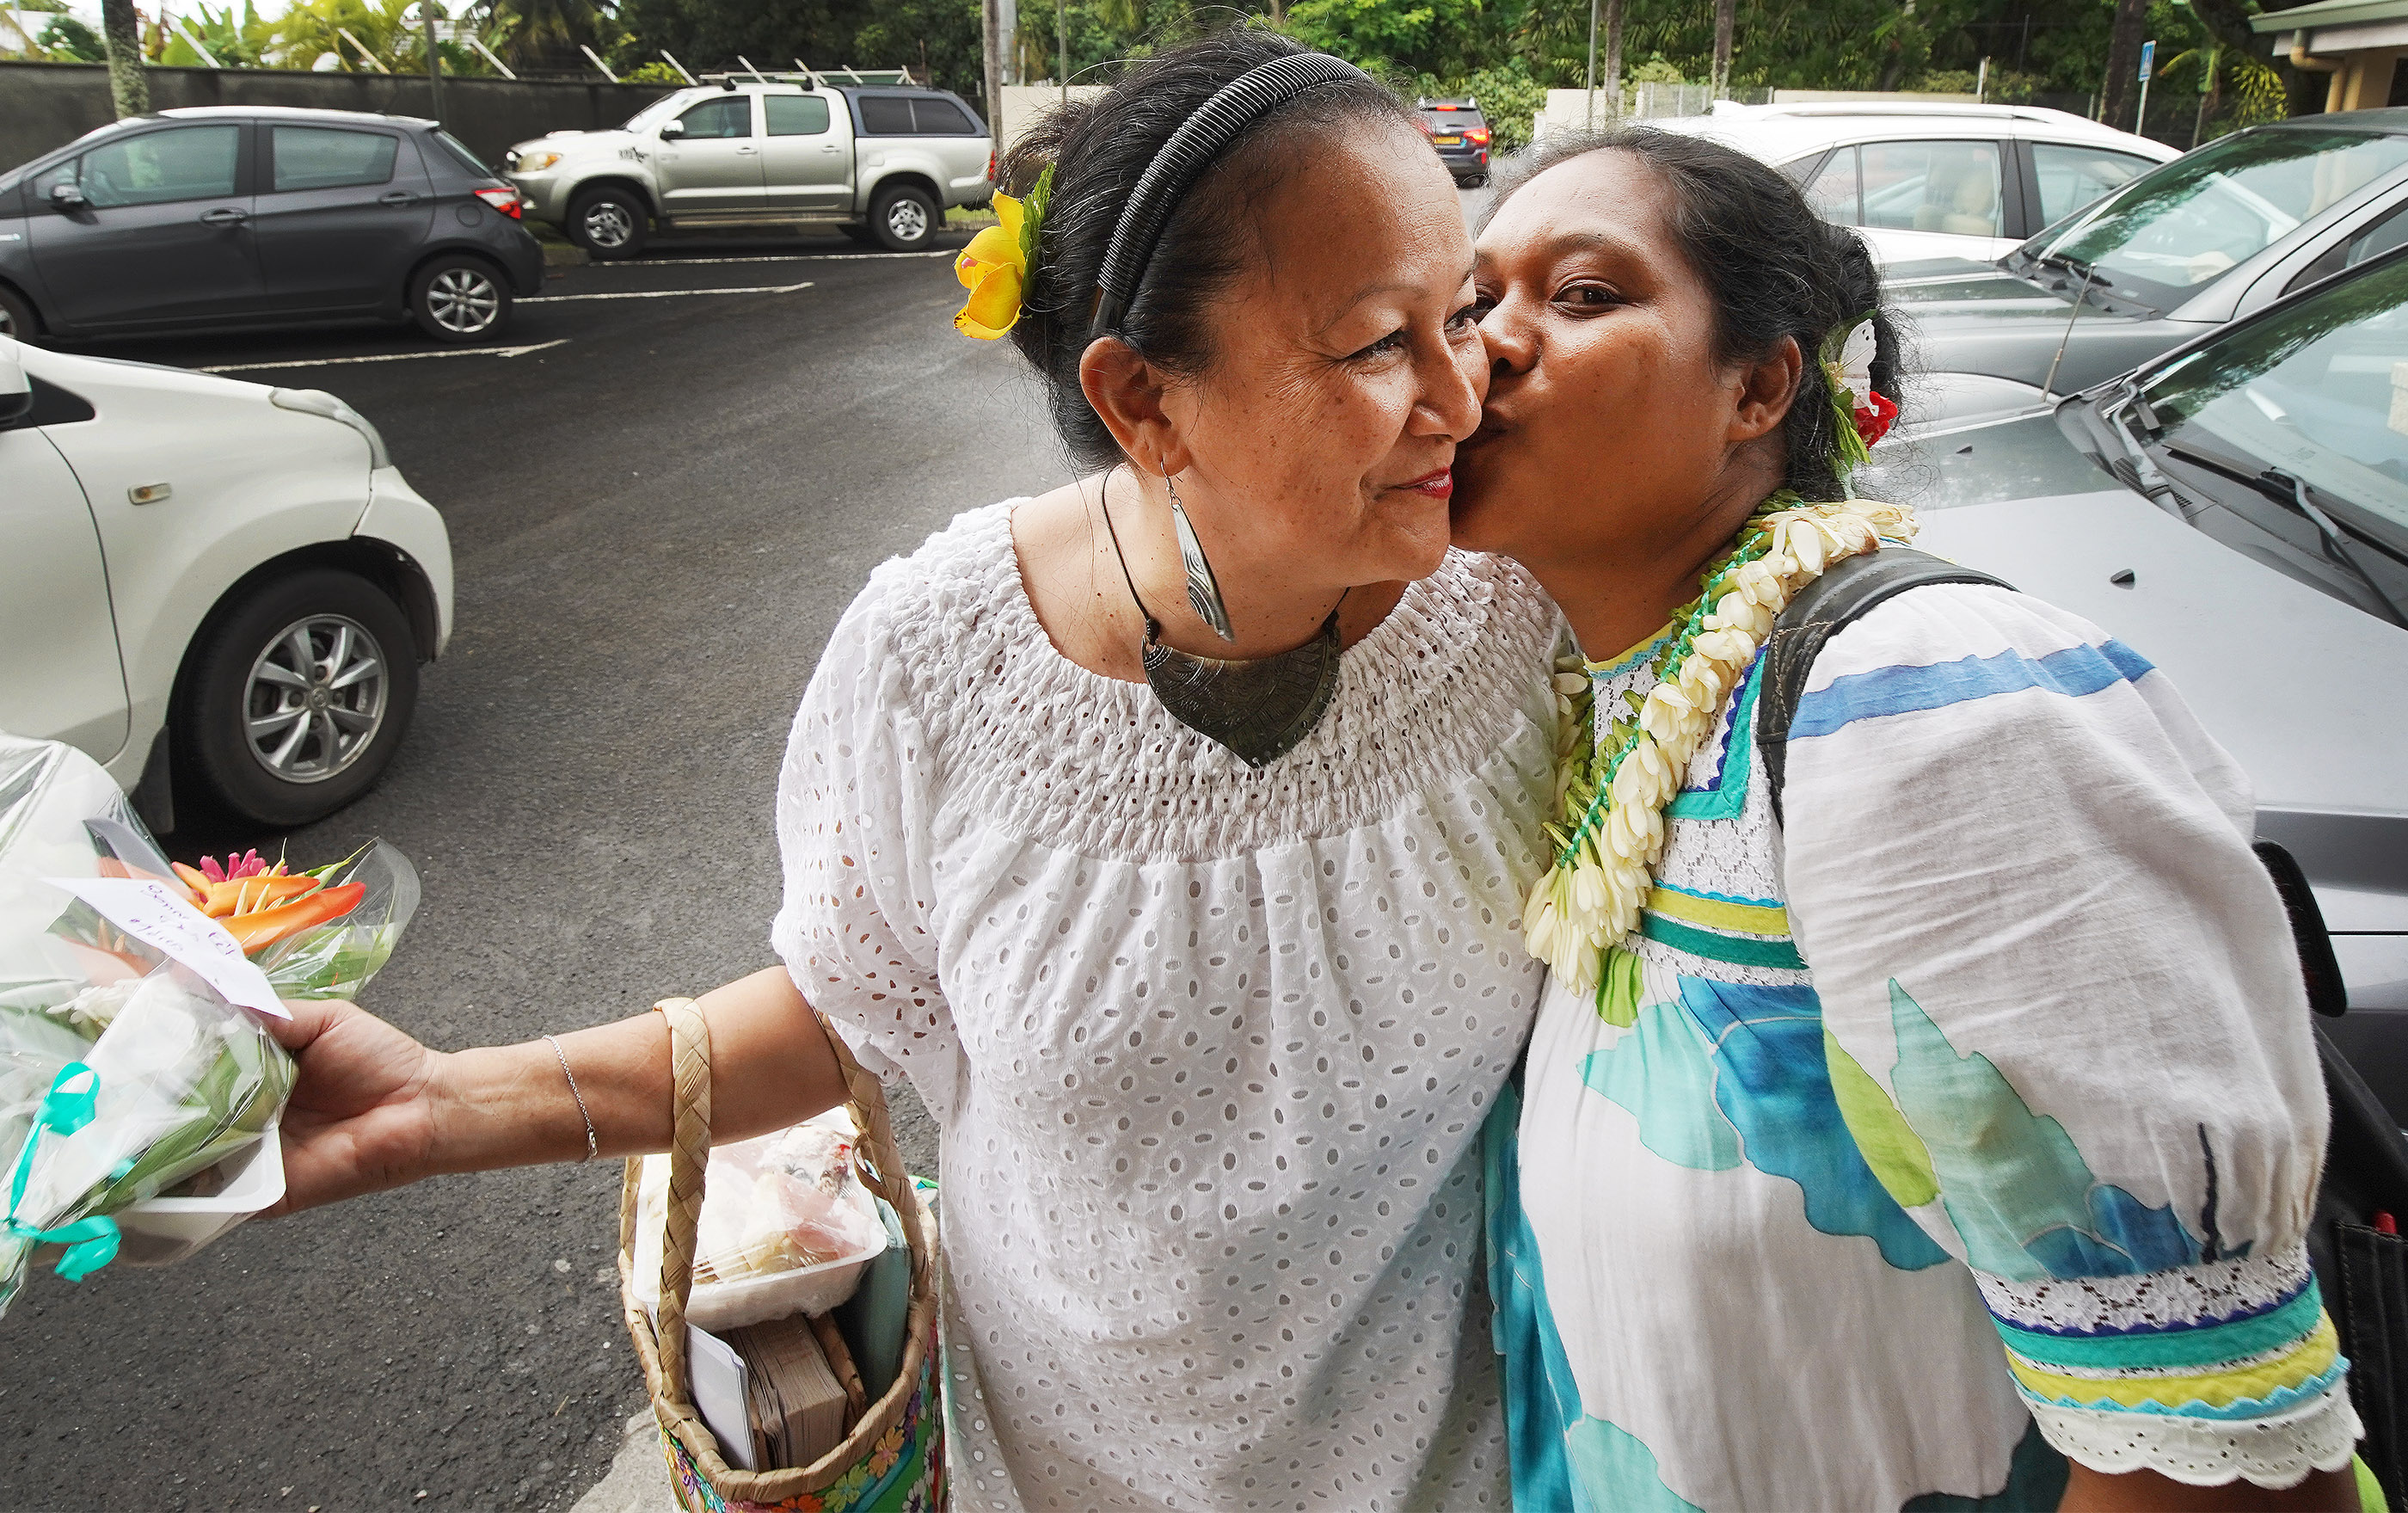 Voahina Alvarez gets a kiss and a flower for Mother's Day from Mataunui Vasthi at The Church of Jesus Christ of Latter-day Saints in Papeete, Tahiti, on May 26, 2019.